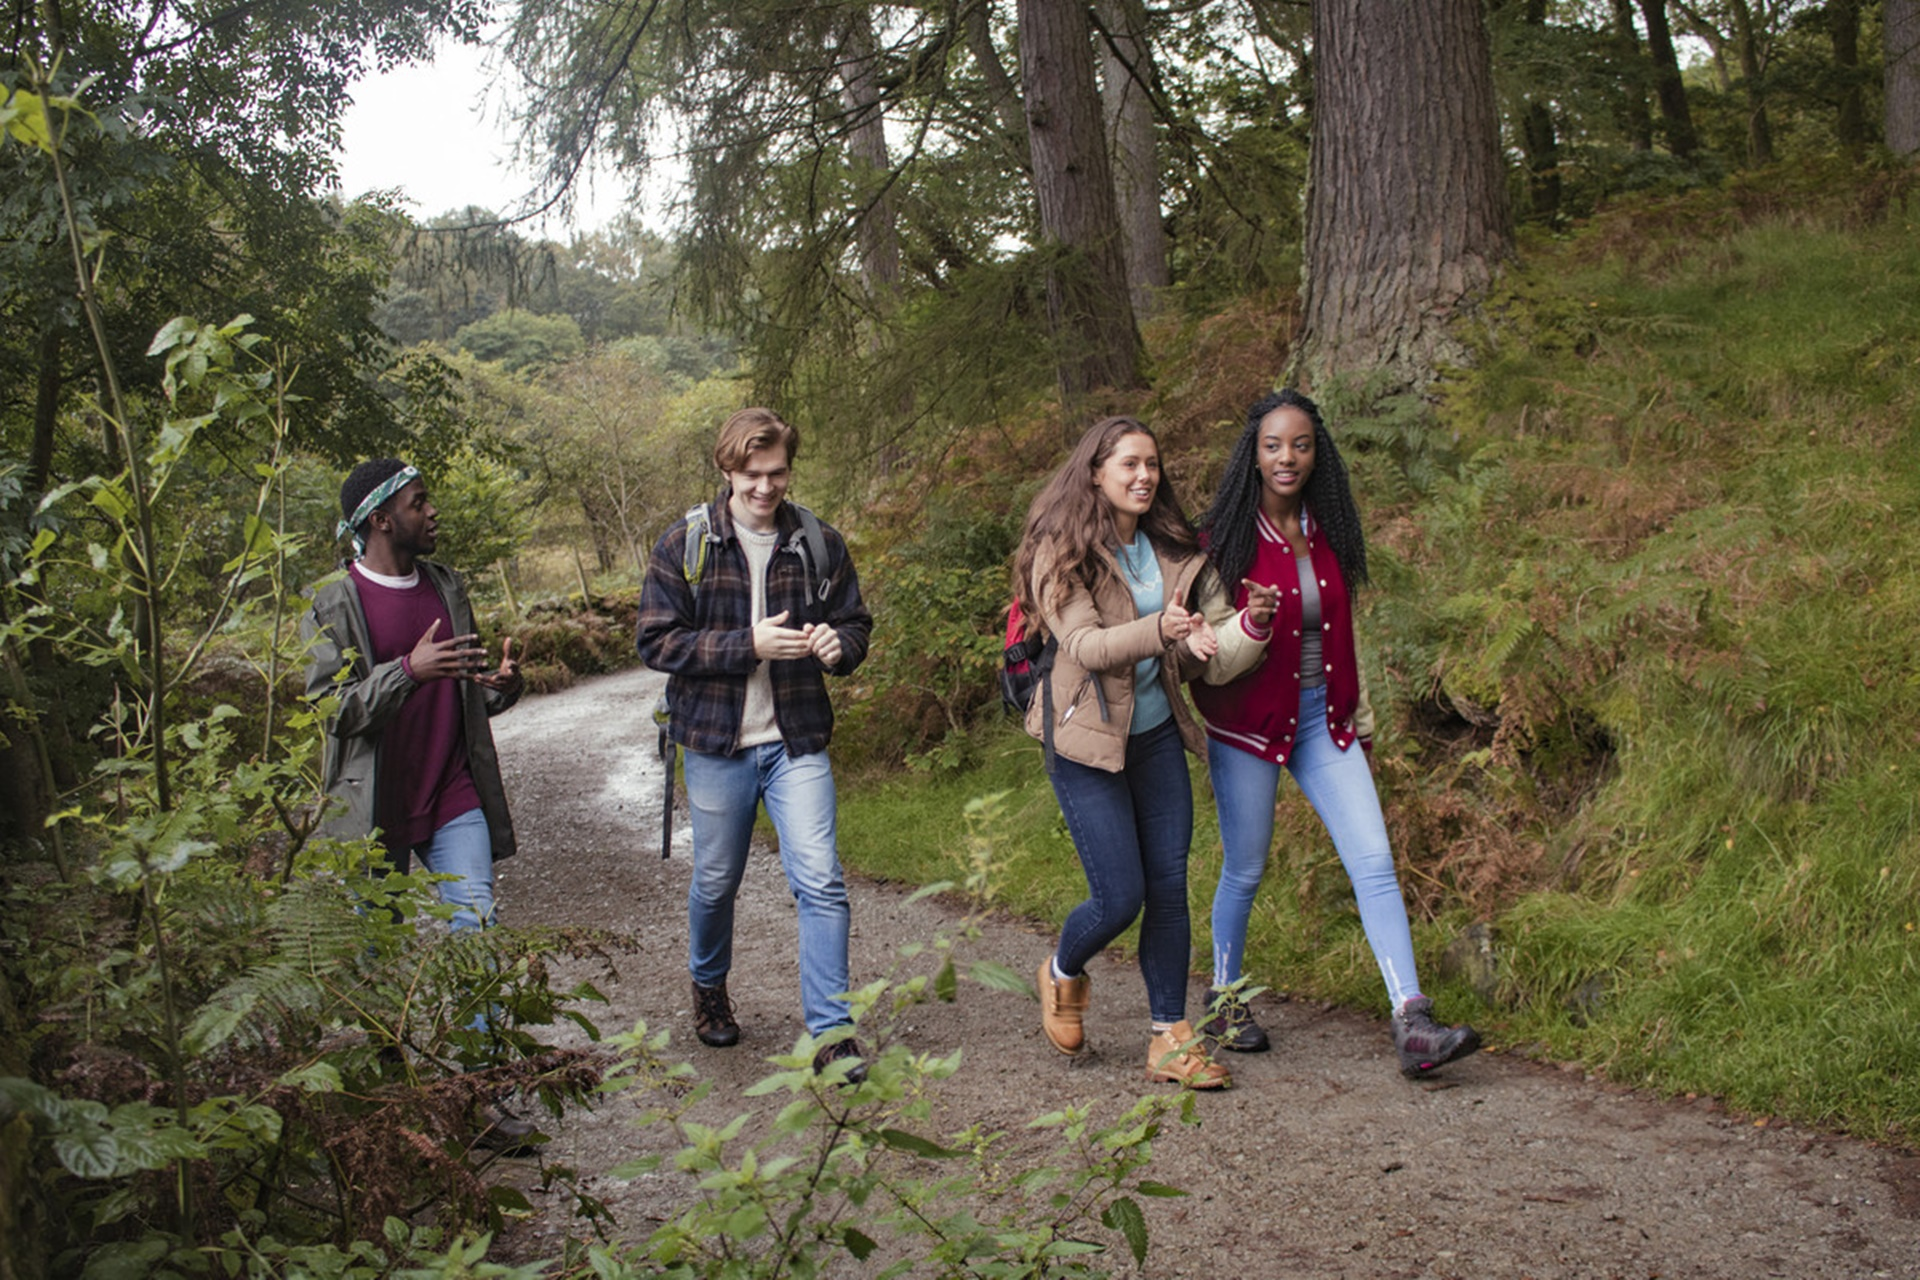 Young people walking in woodland